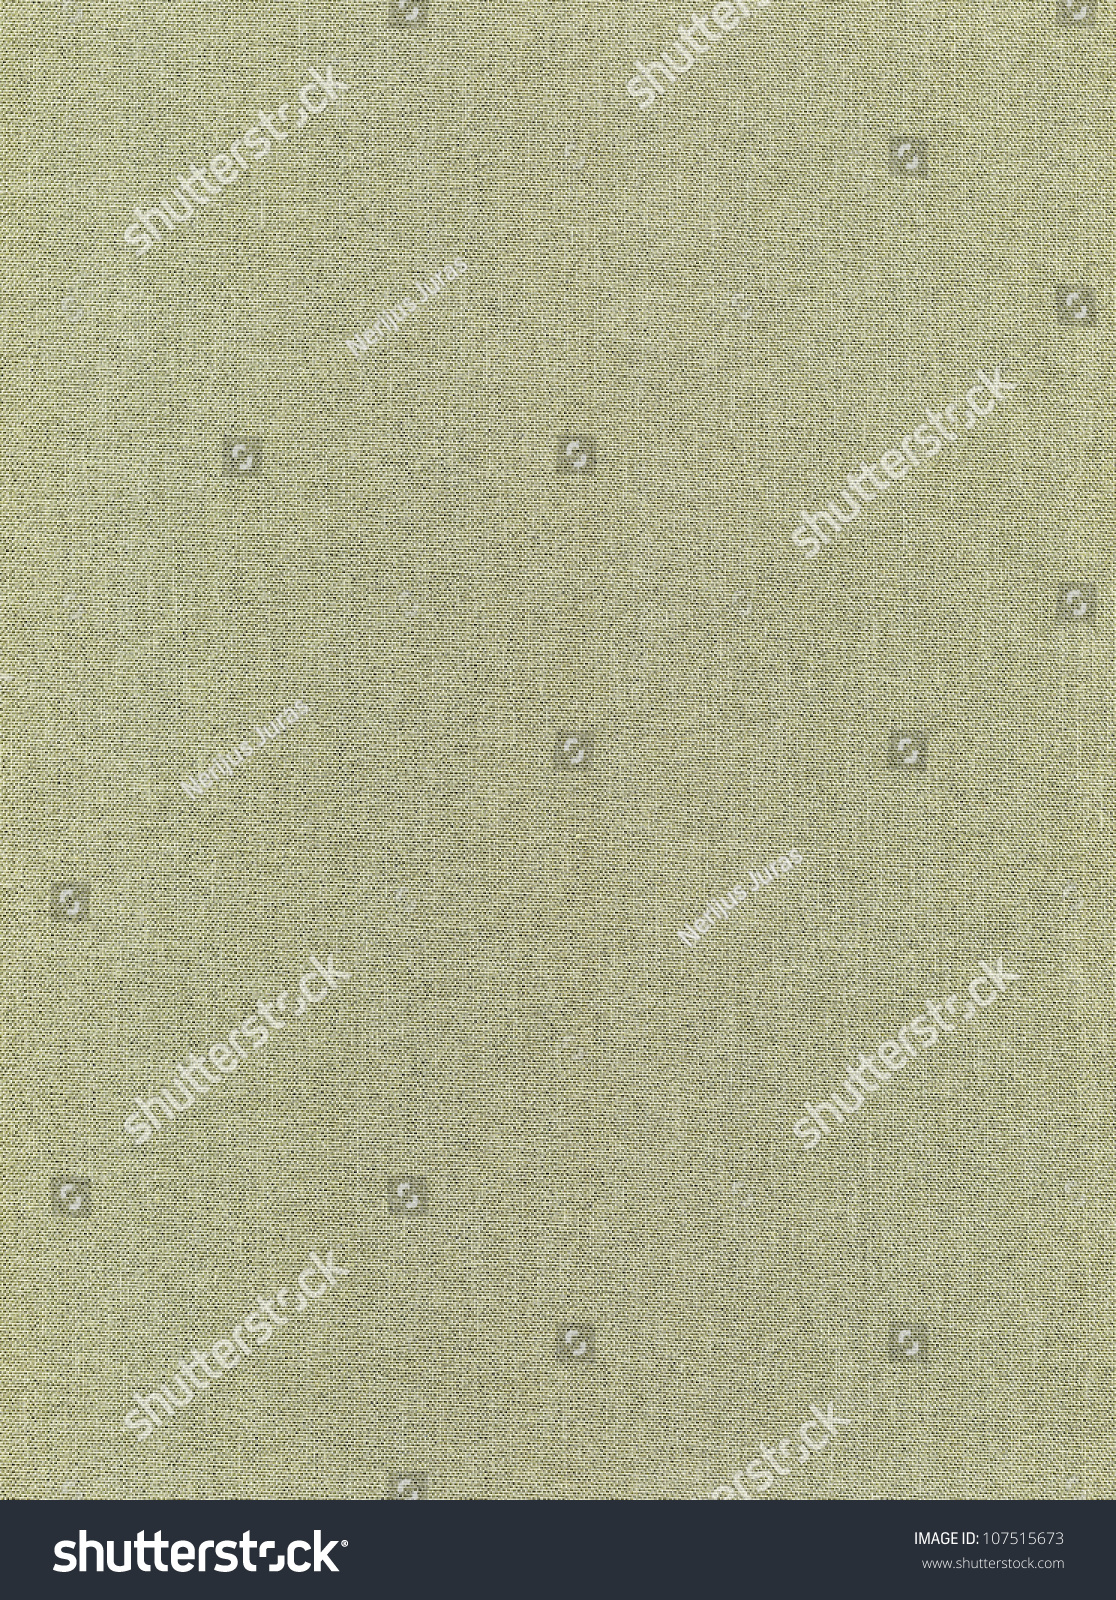 Fabric Book Cover Texture : Green grey cloth texture background book stock photo